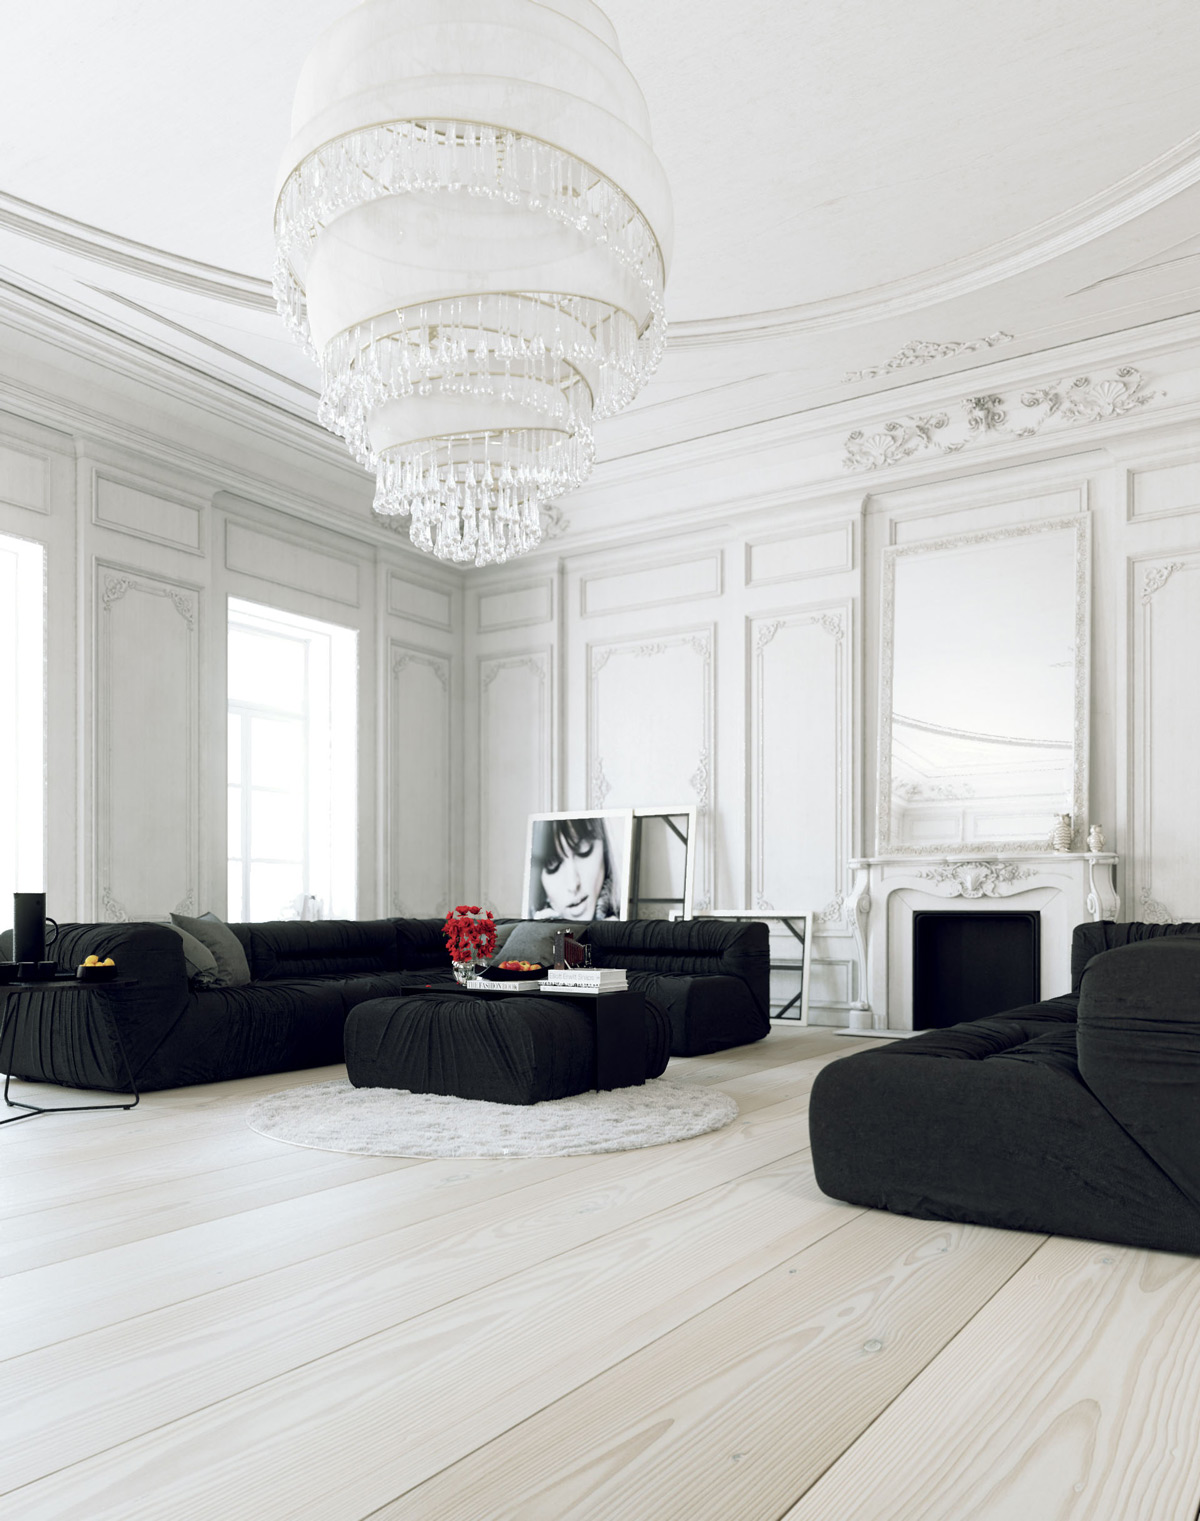 all white living room decor kitchen paint ideas 30 rooms that exude purity and peace 14 visualizer juraj talcik this black keeps